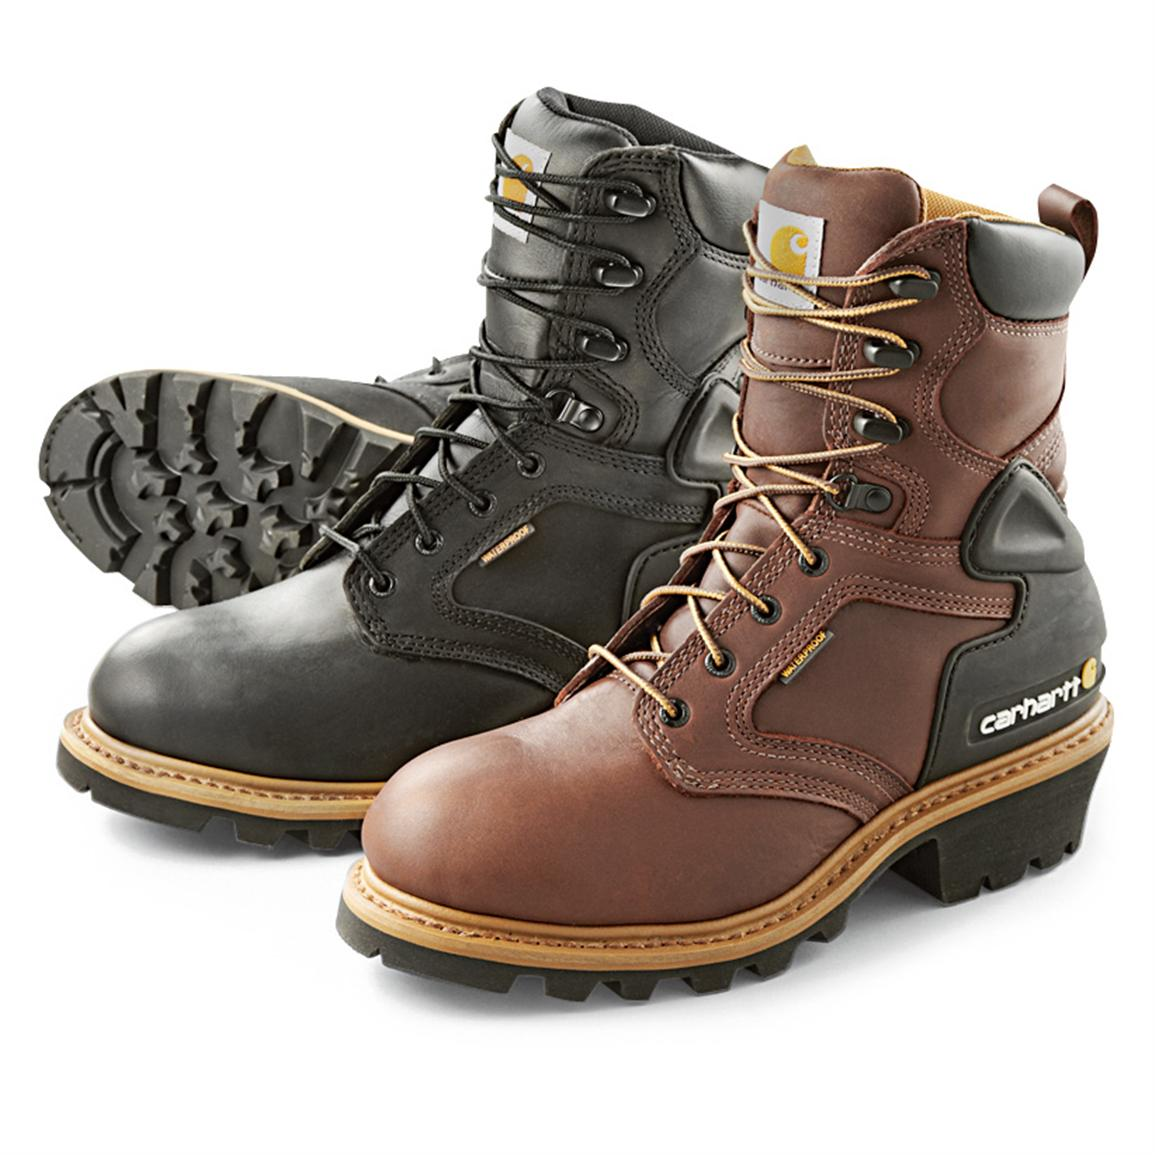 Men's Carhartt® Soft Toe Waterproof Logger Work Boots